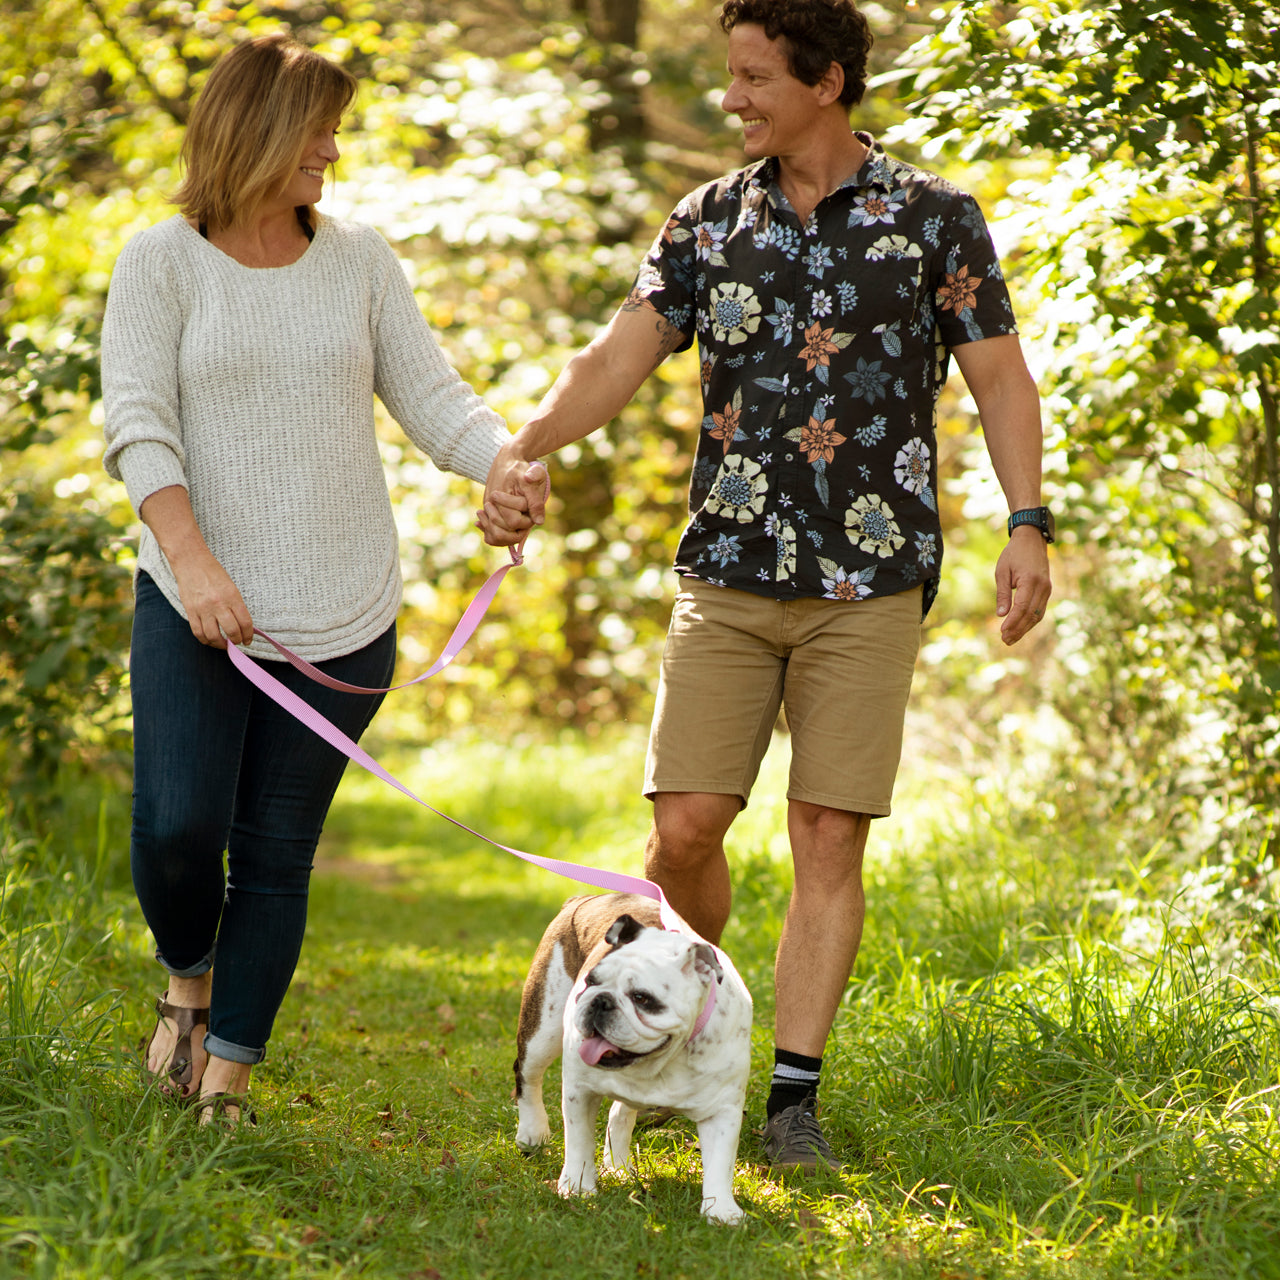 3 Dog Walking Tips You'll Want to Use